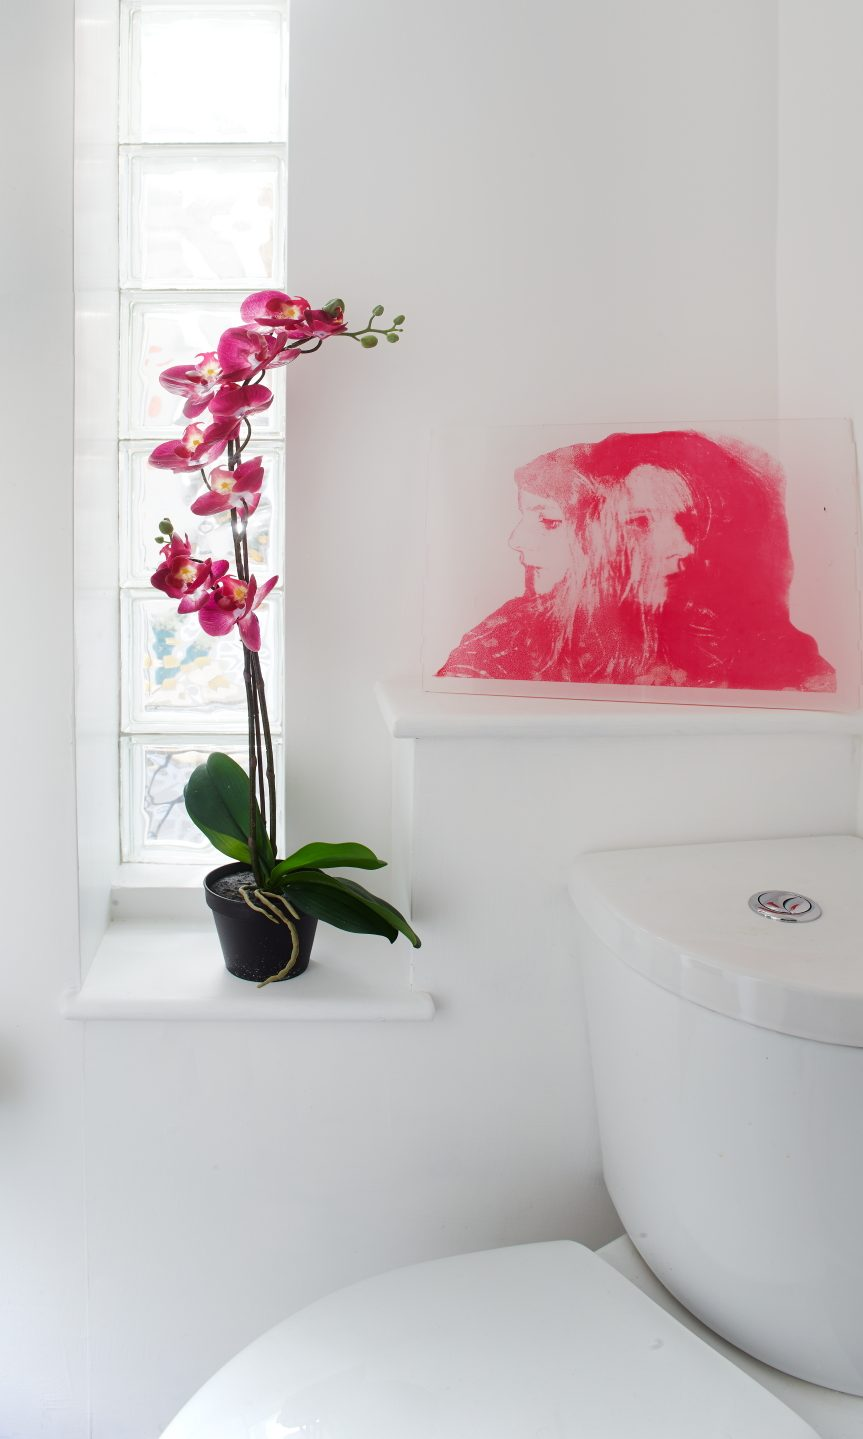 A toilet in a white bathroom with a dark pink orchid on the window sill and an art drawing